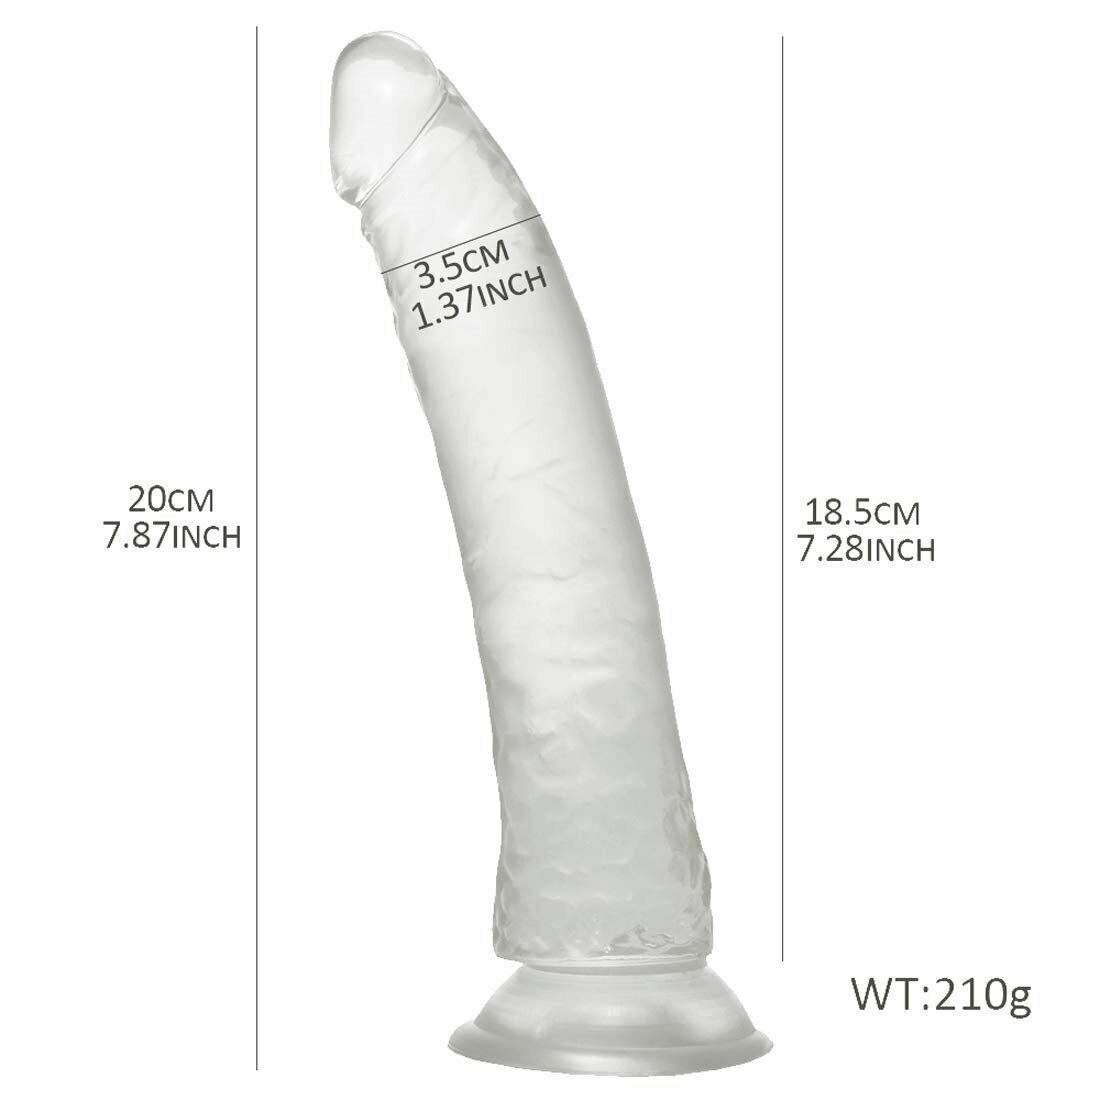 MD 21cm Crystal Dildo Dong Realistic Silicone Penis Cock